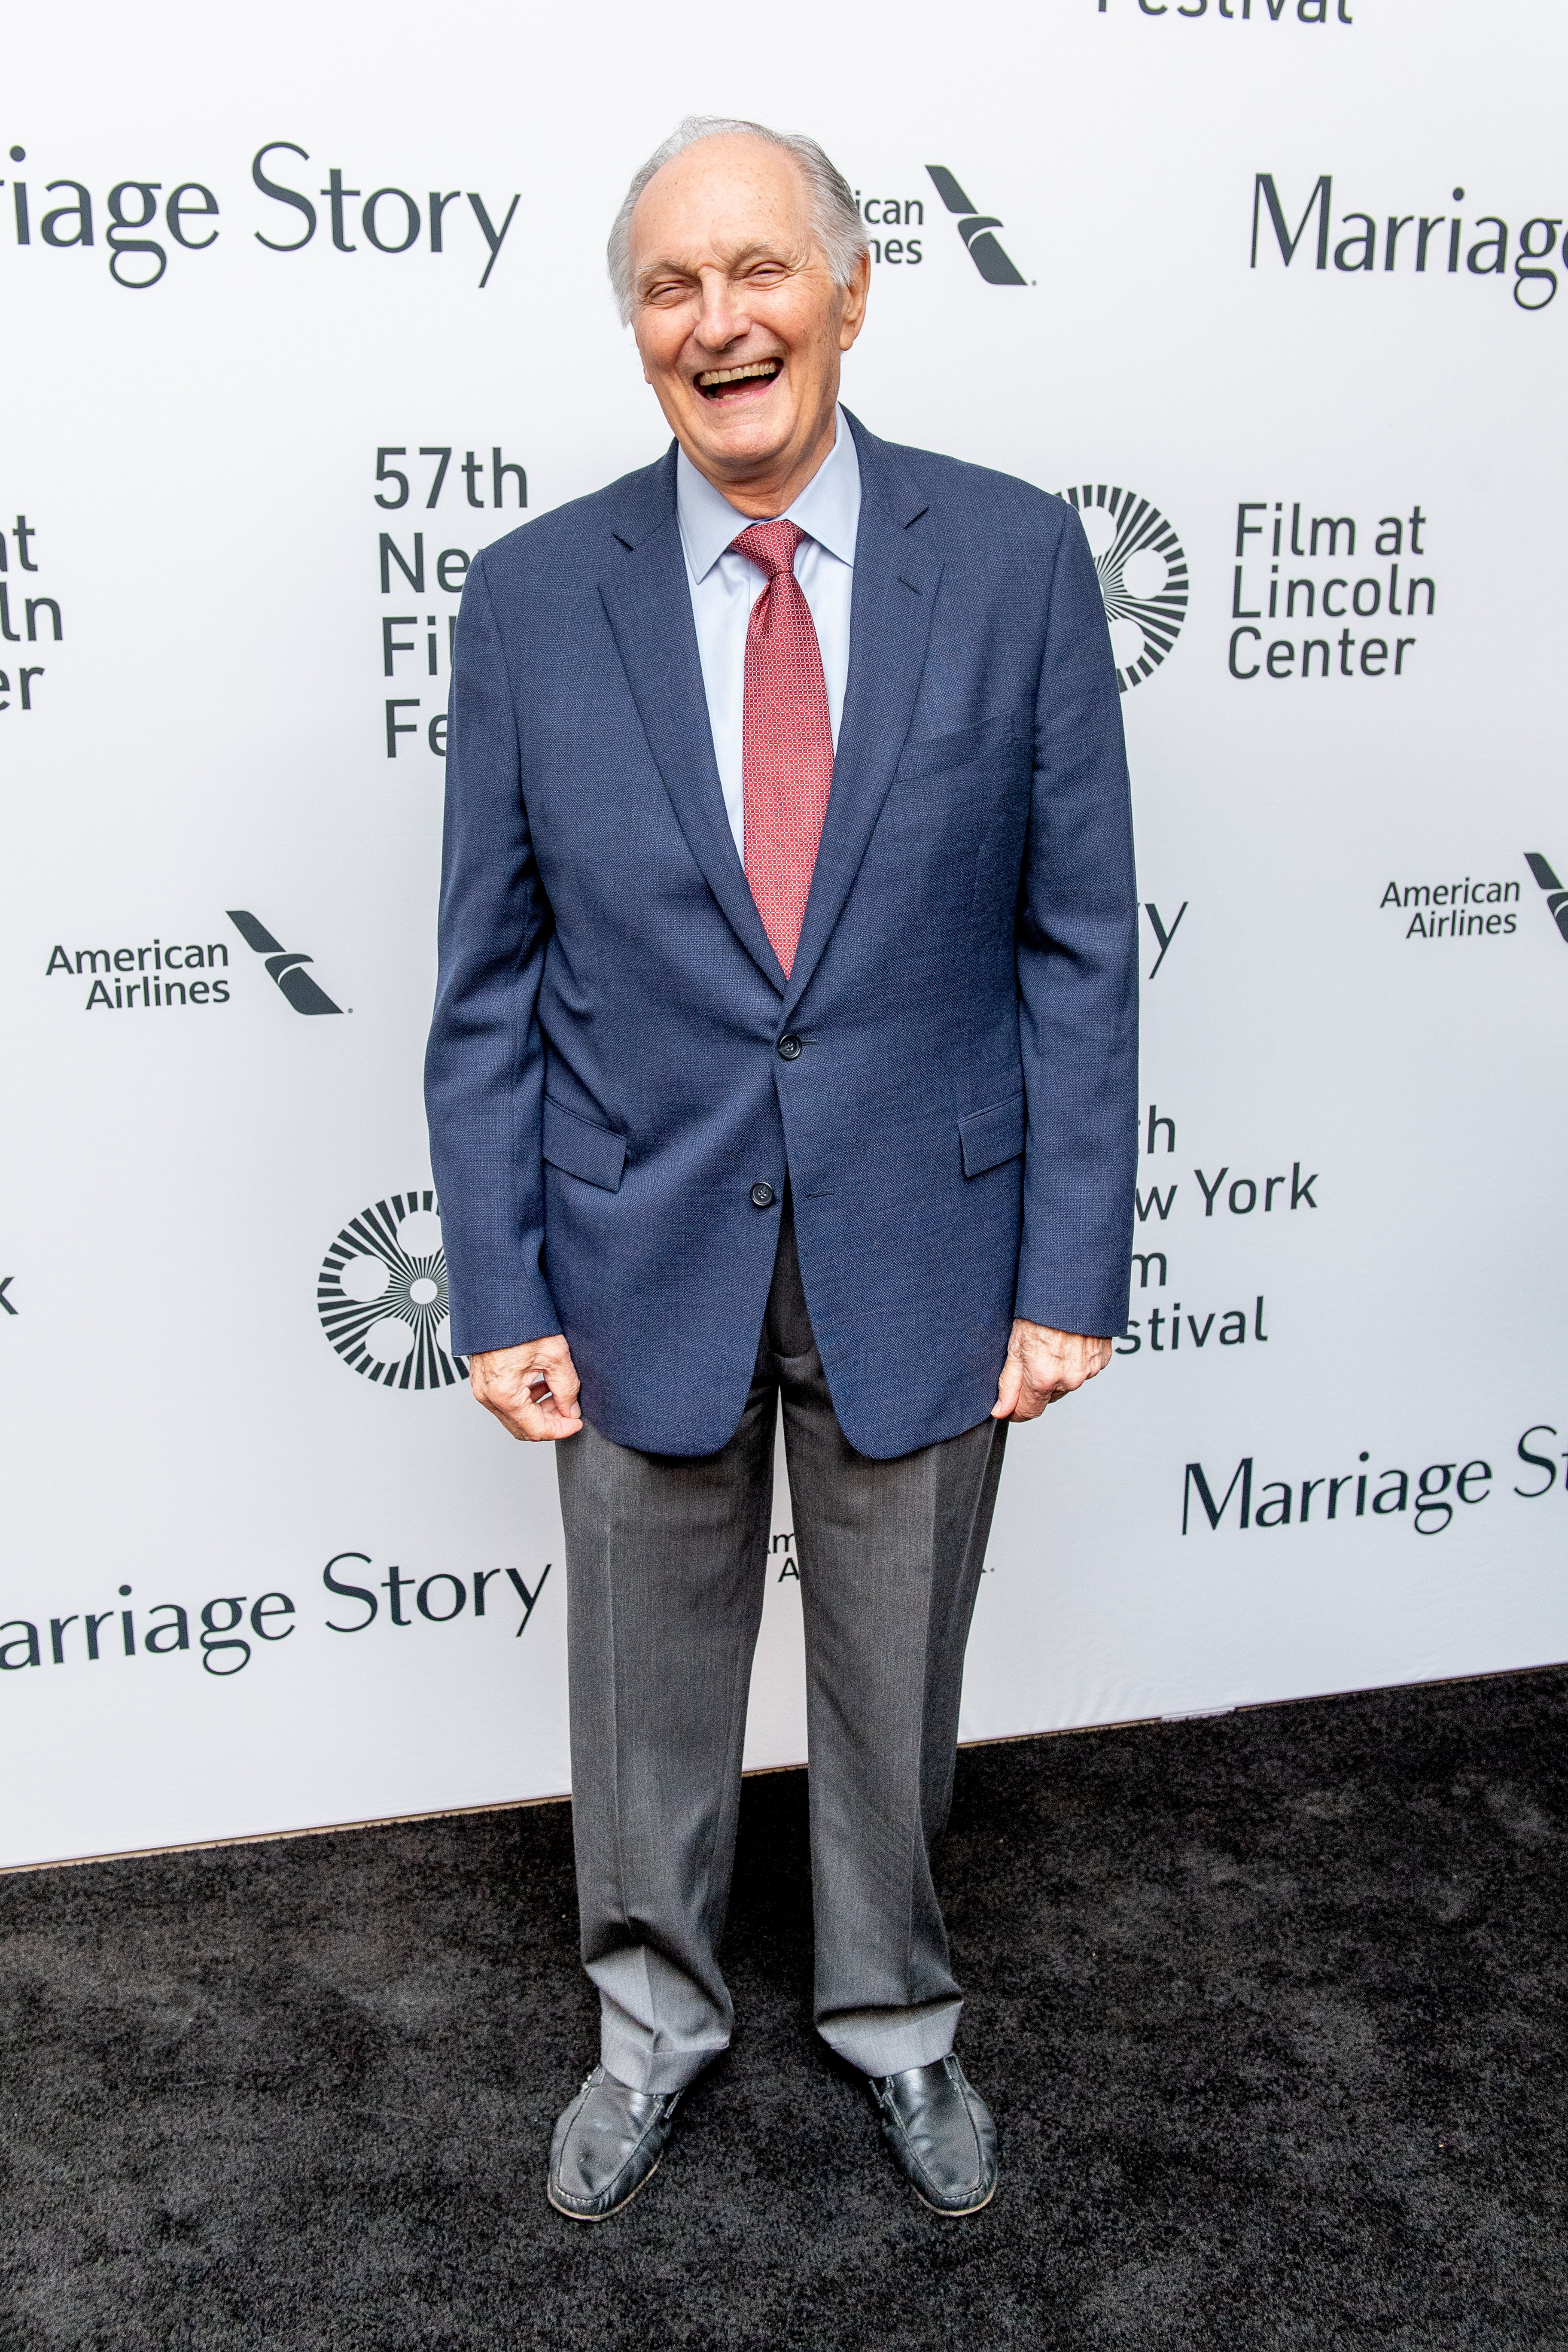 alan alda marriage story premiere laughing